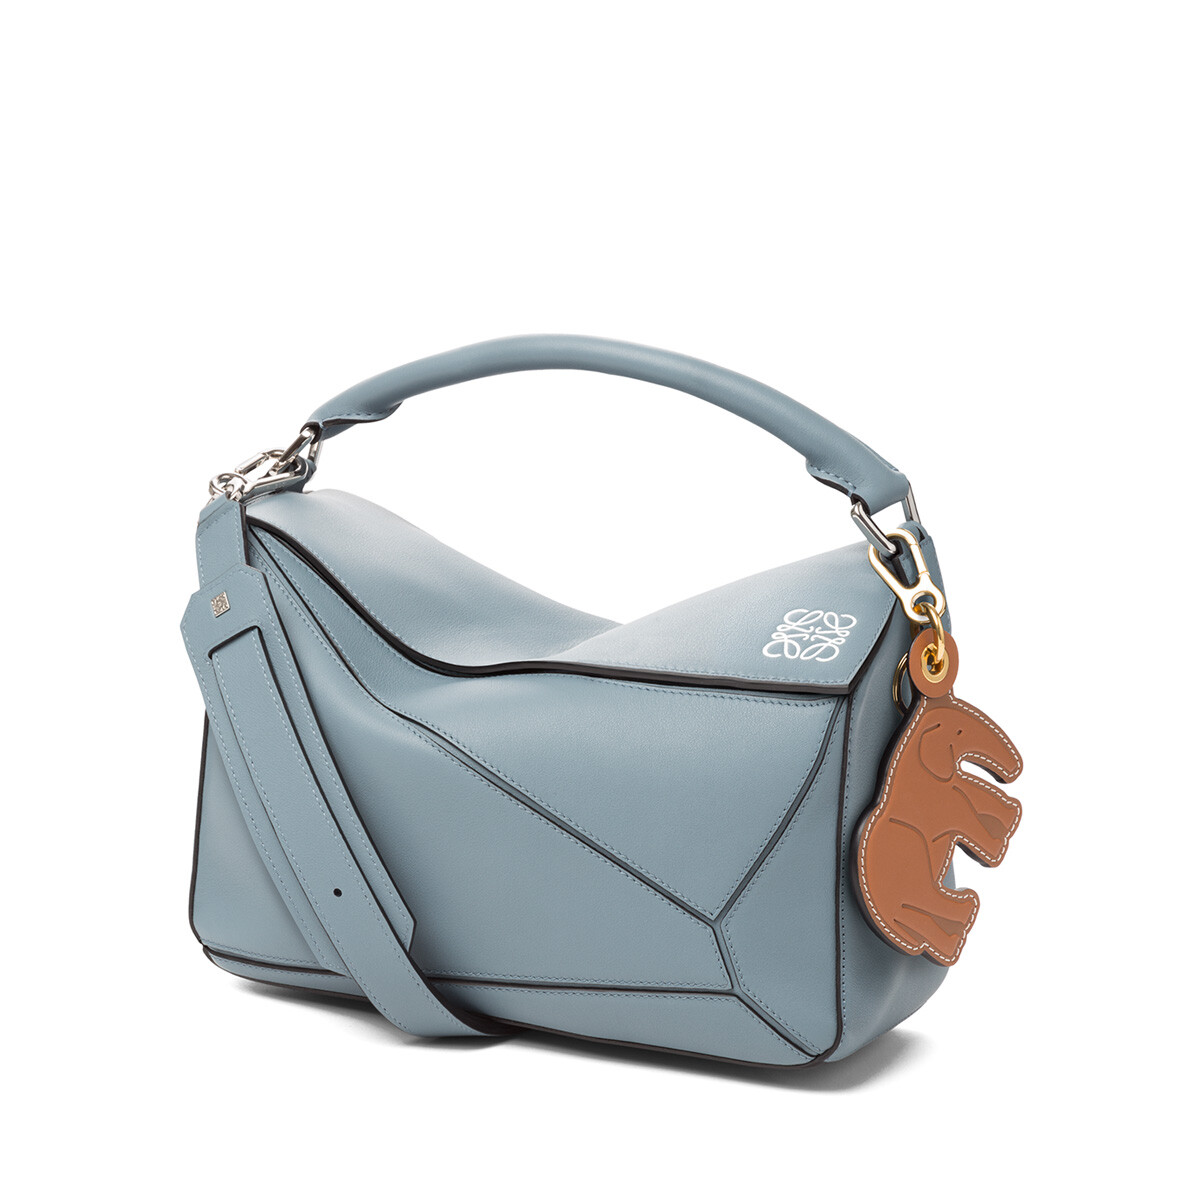 LOEWE Elephant Leather Charm Tan/Navy Blue front